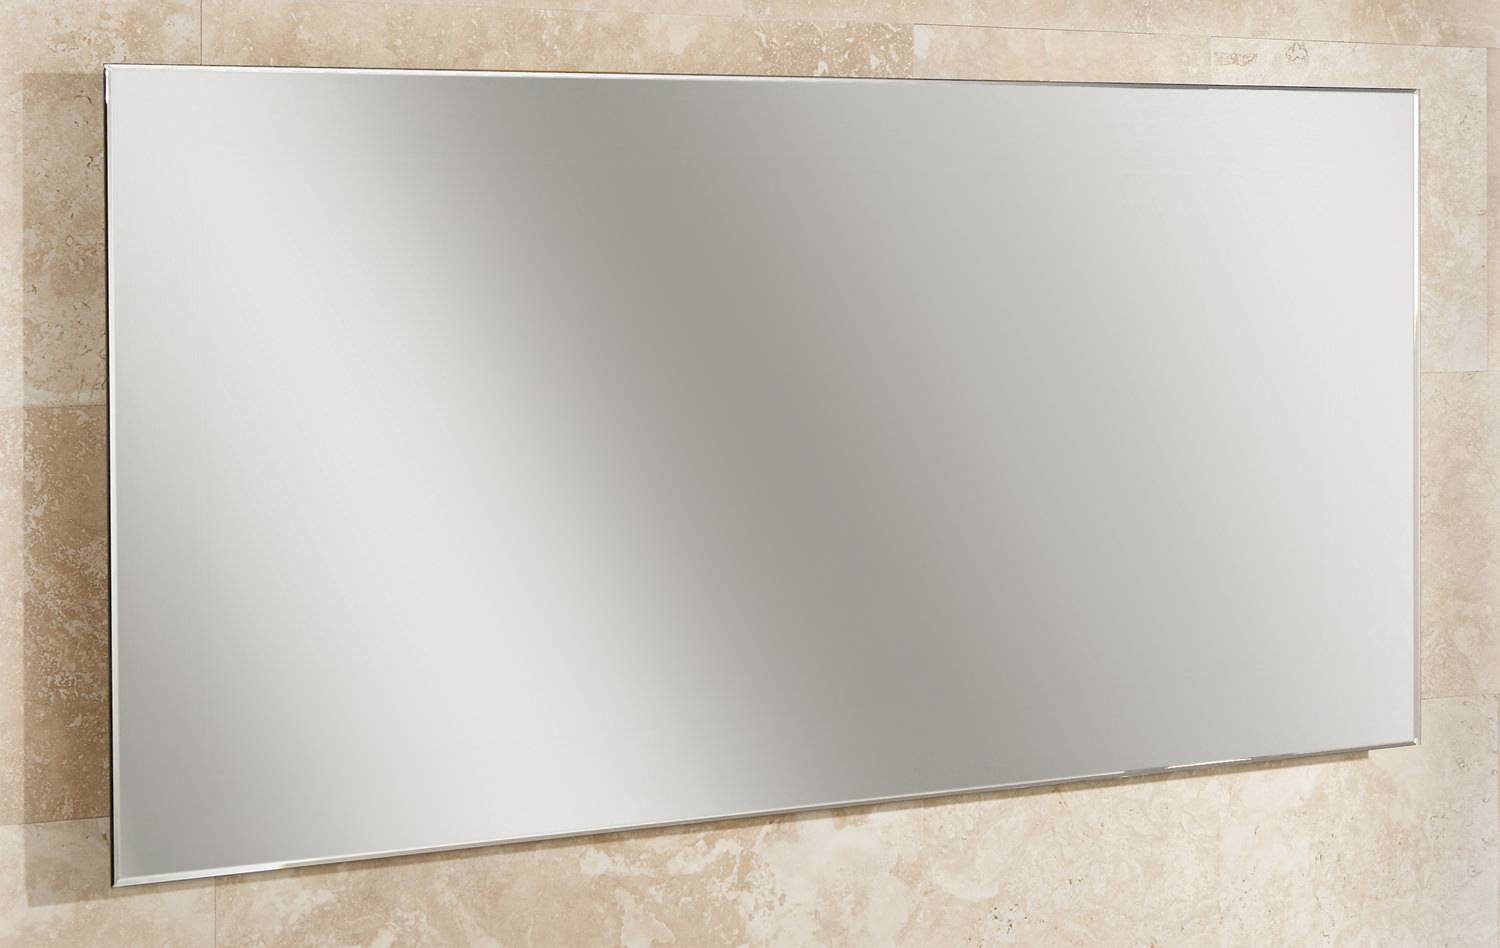 Hib Willow Landscape Bevelled Edge Mirror 1200 X 600Mm | 77305000 within Bevelled Edge Mirrors (Image 11 of 15)